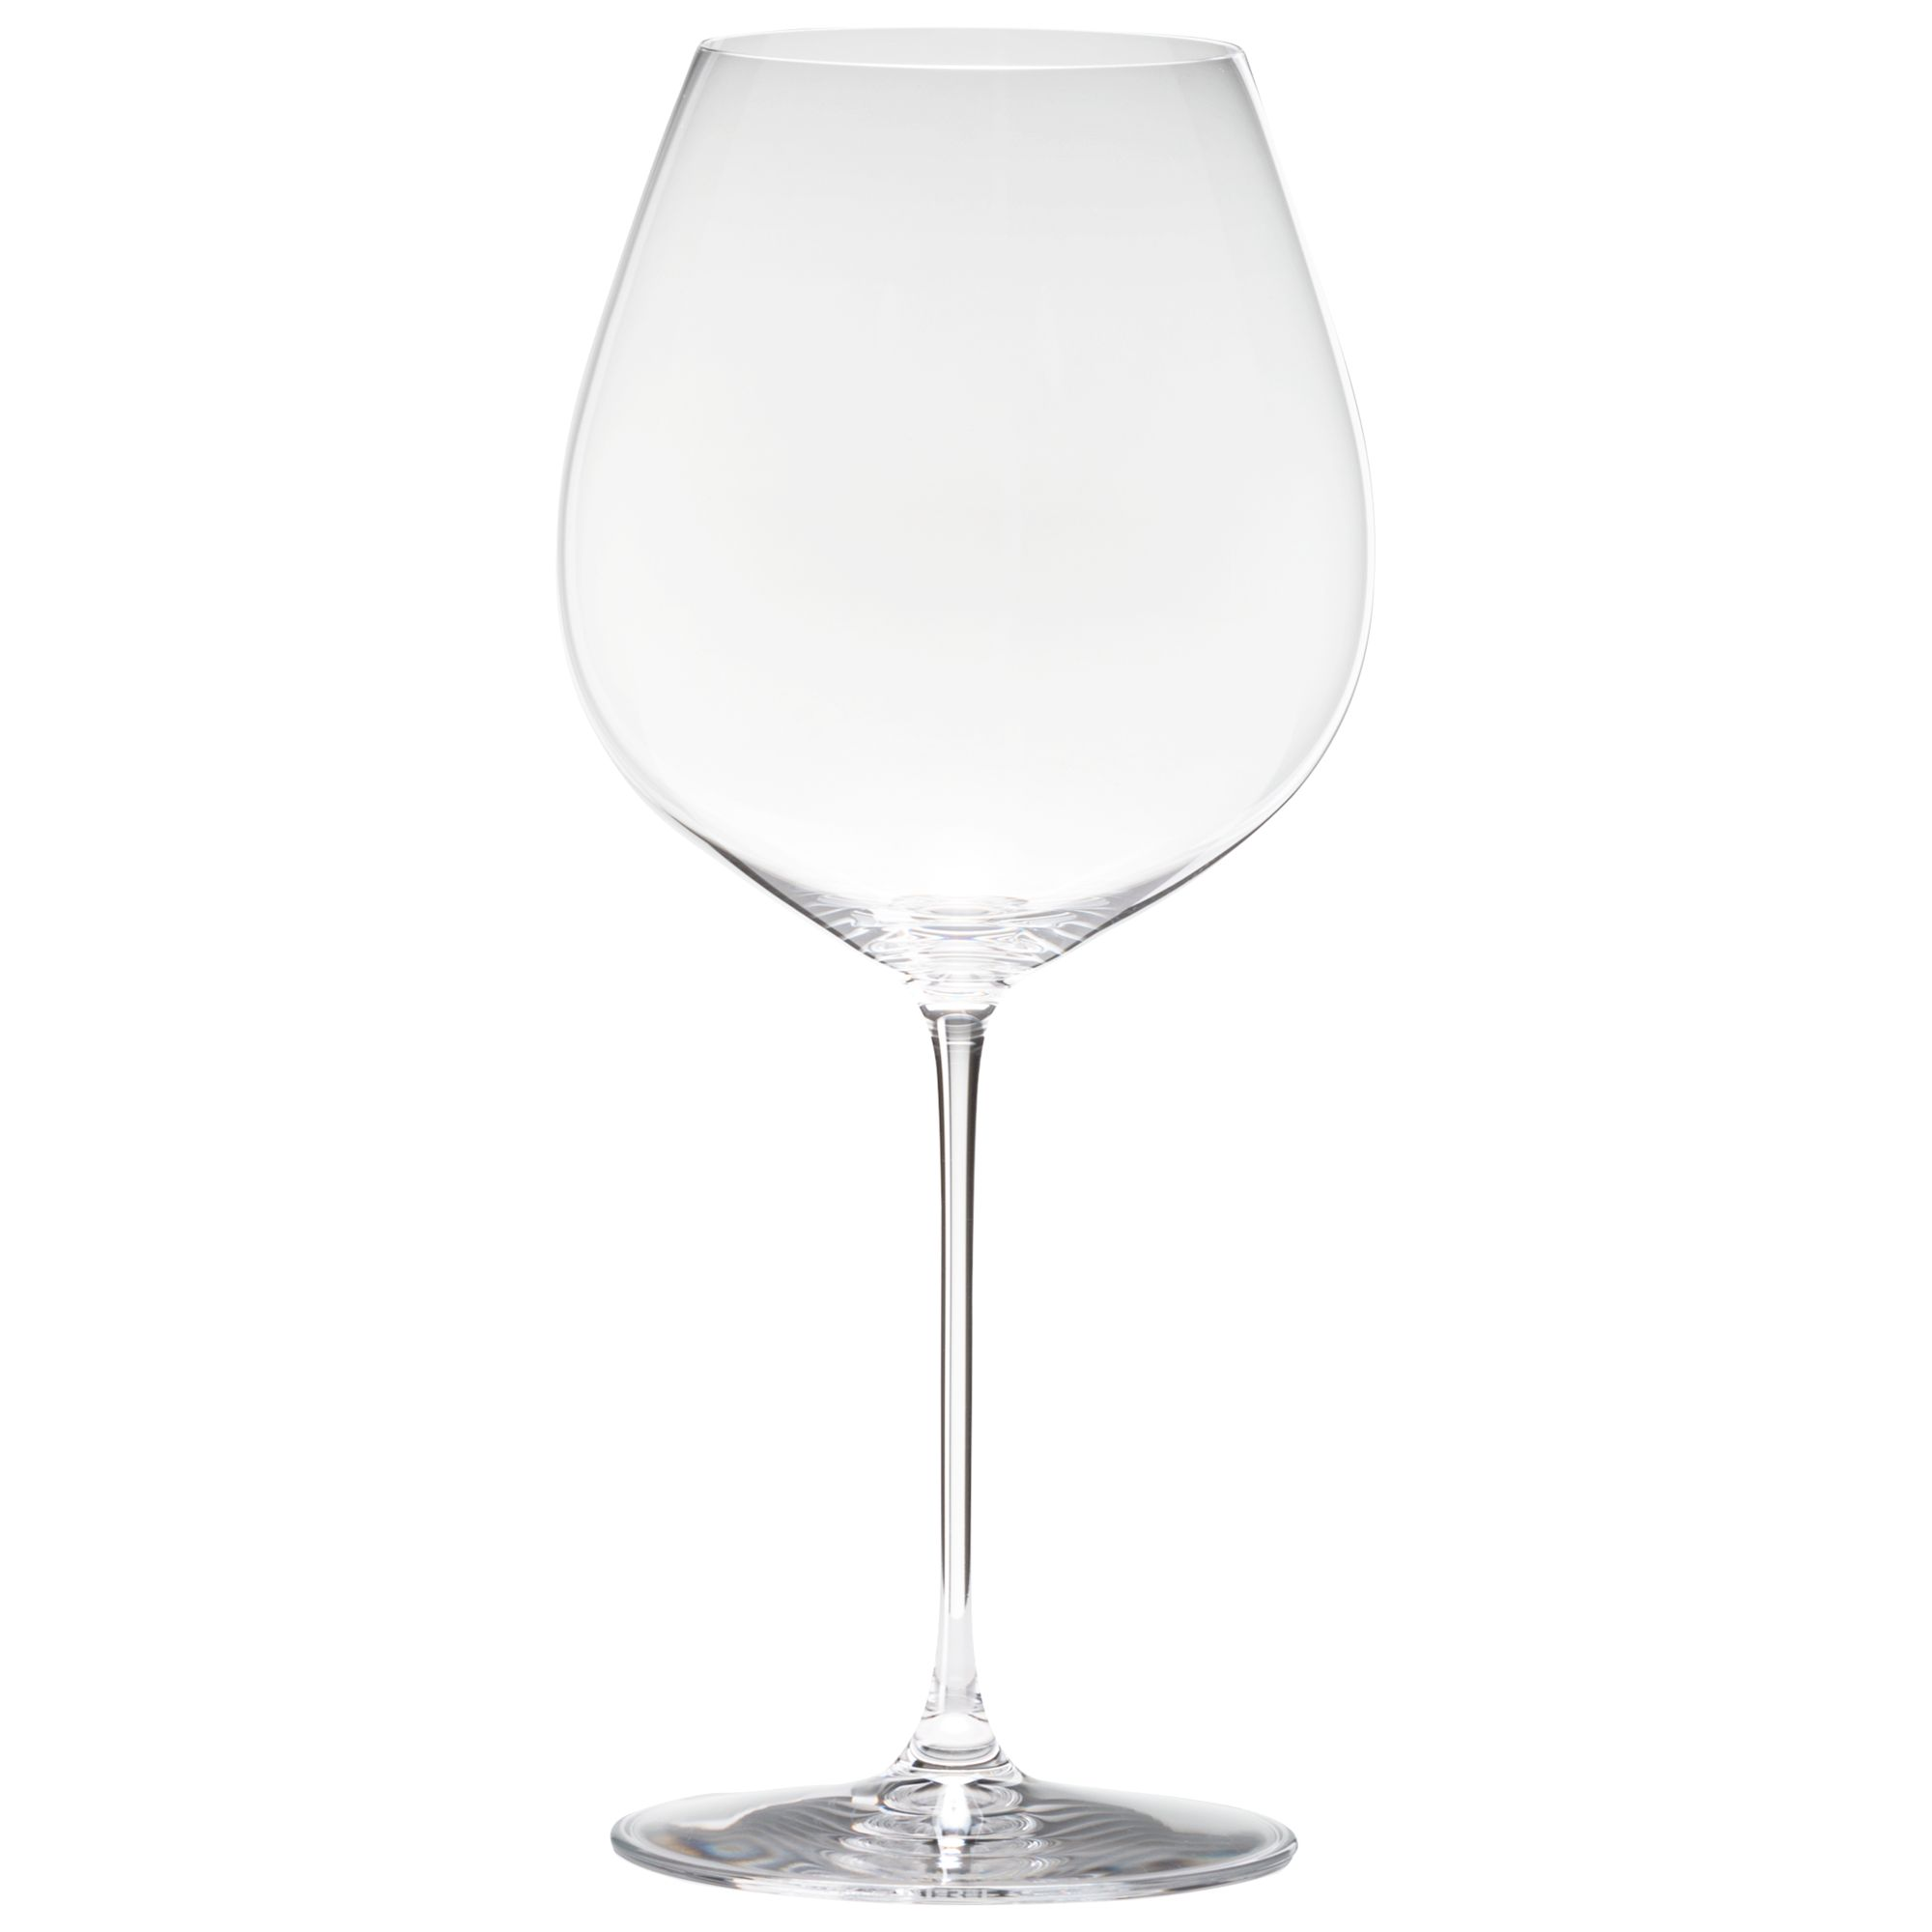 Riedel Riedel Veritas Old World Pinot Noir Wine Glasses, Set of 2